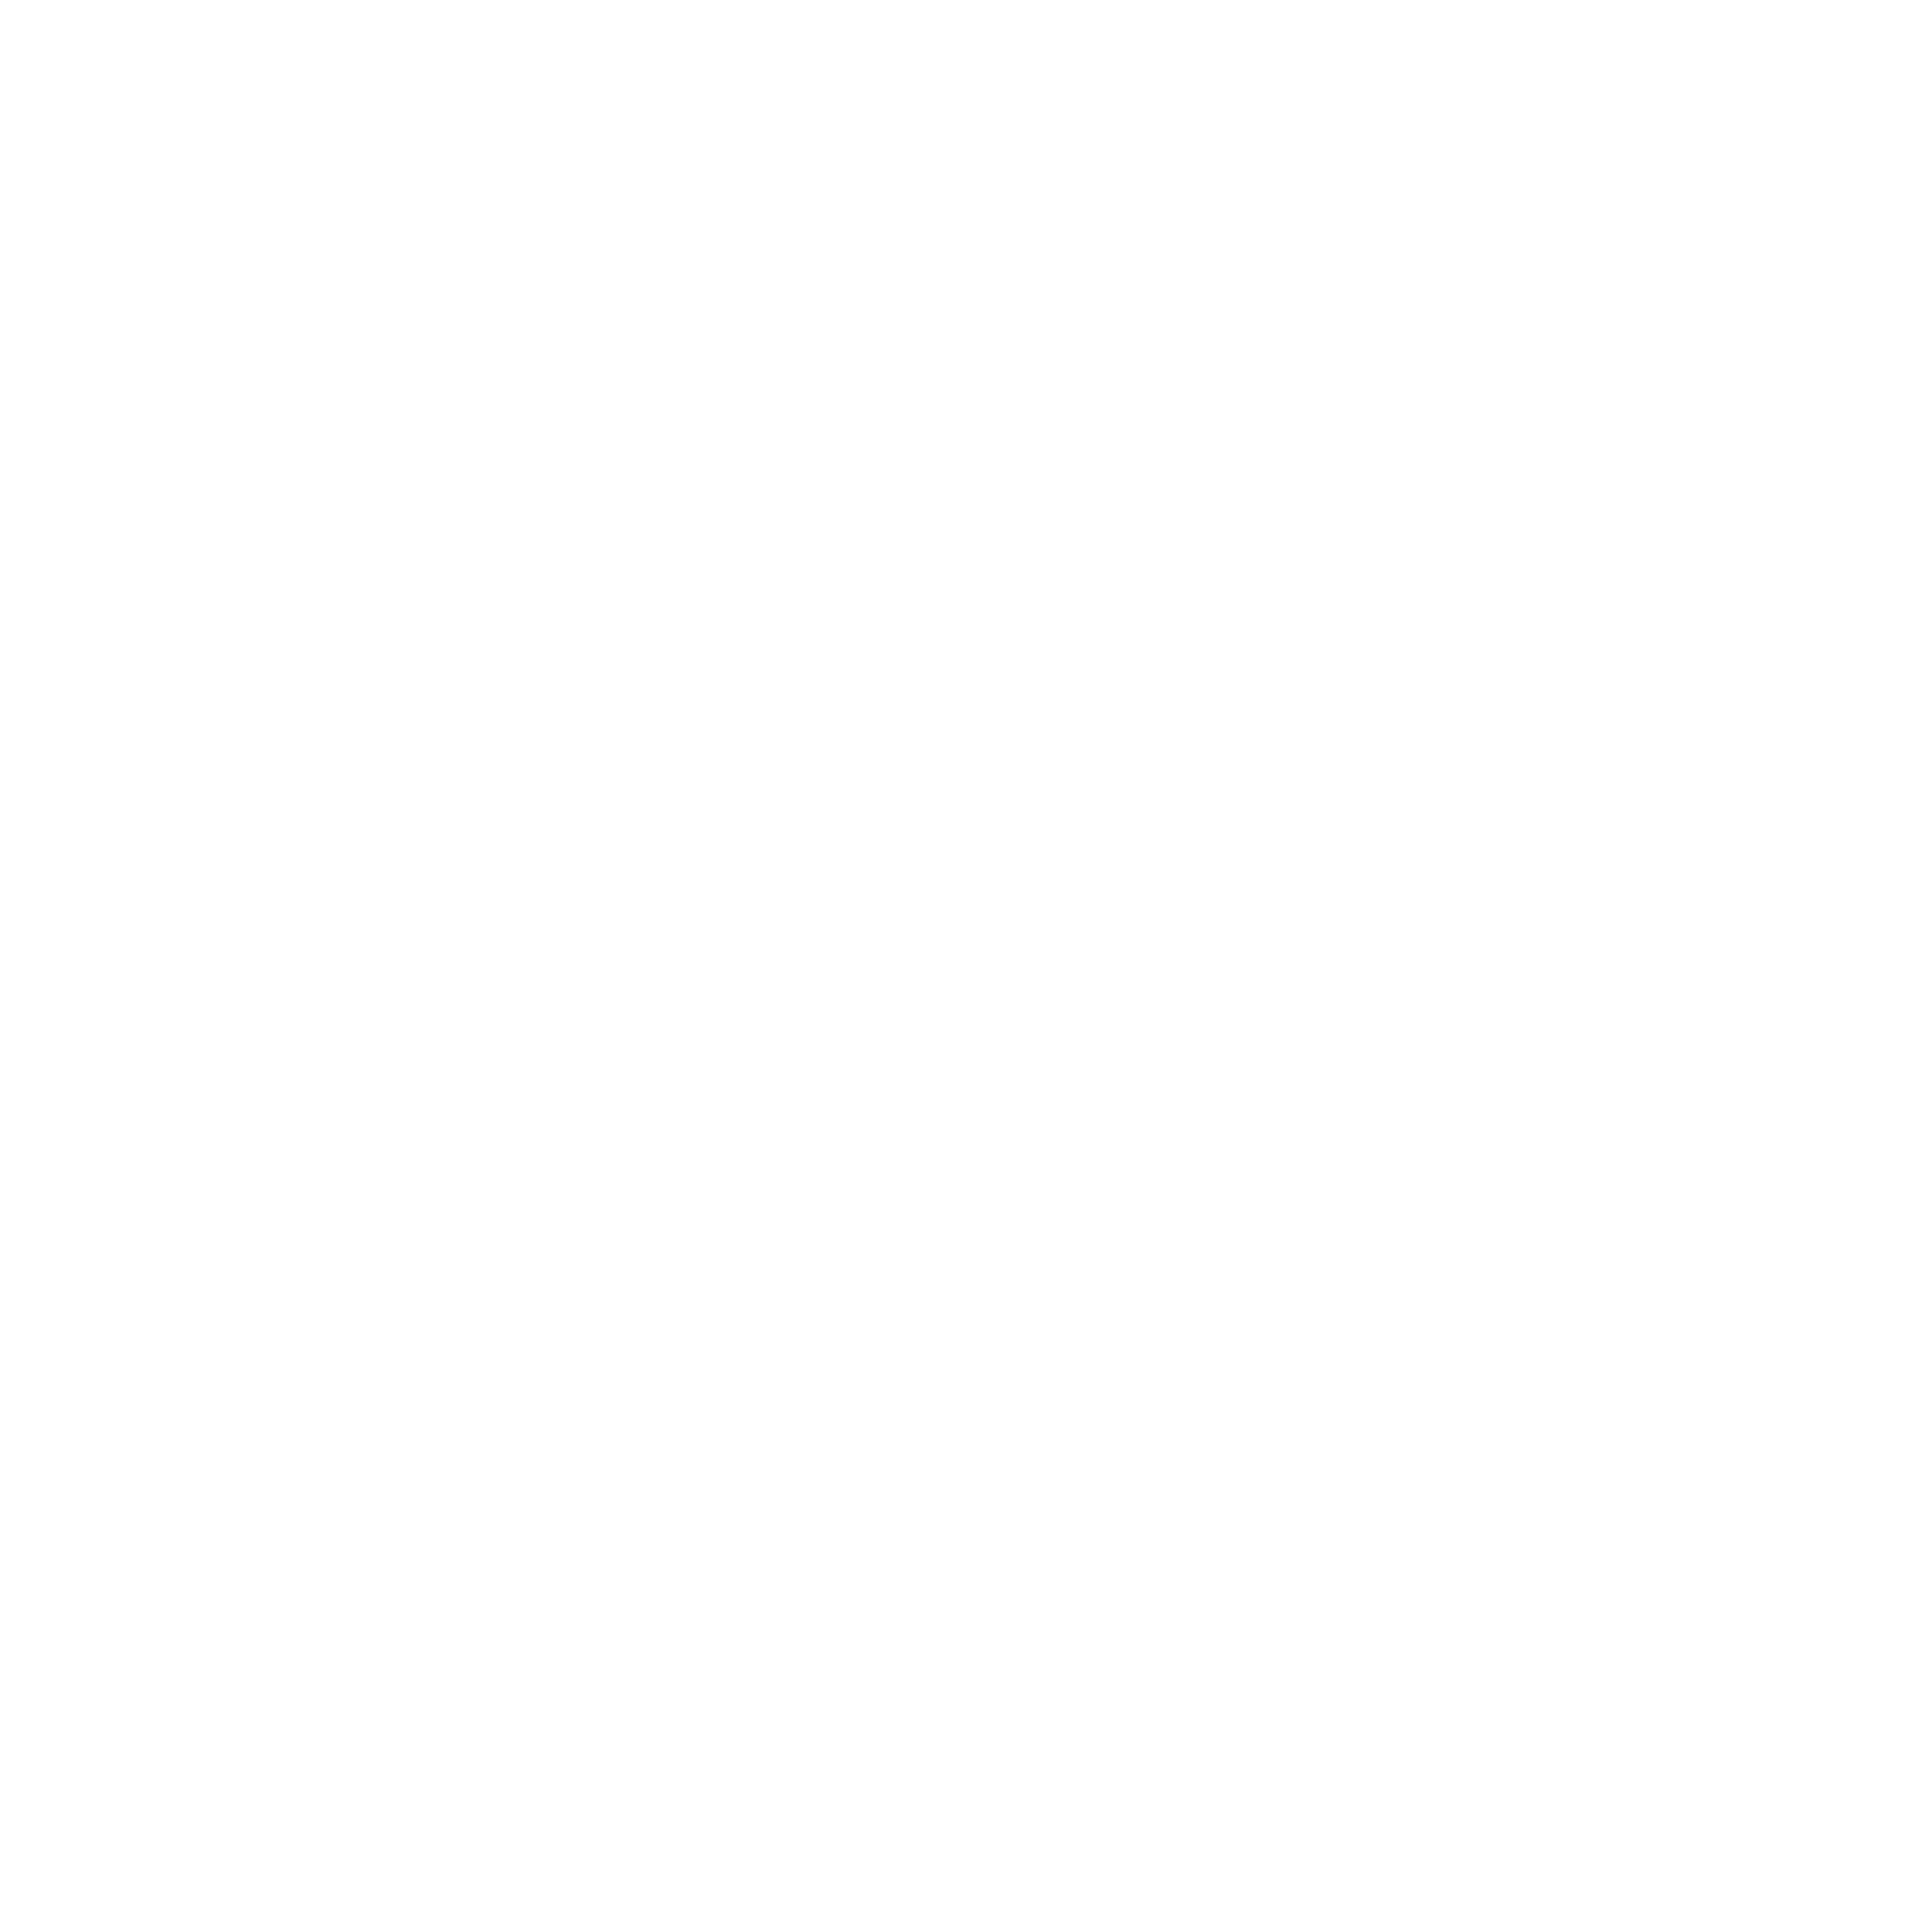 design-like-mad-history-numbers-nonprofits.png